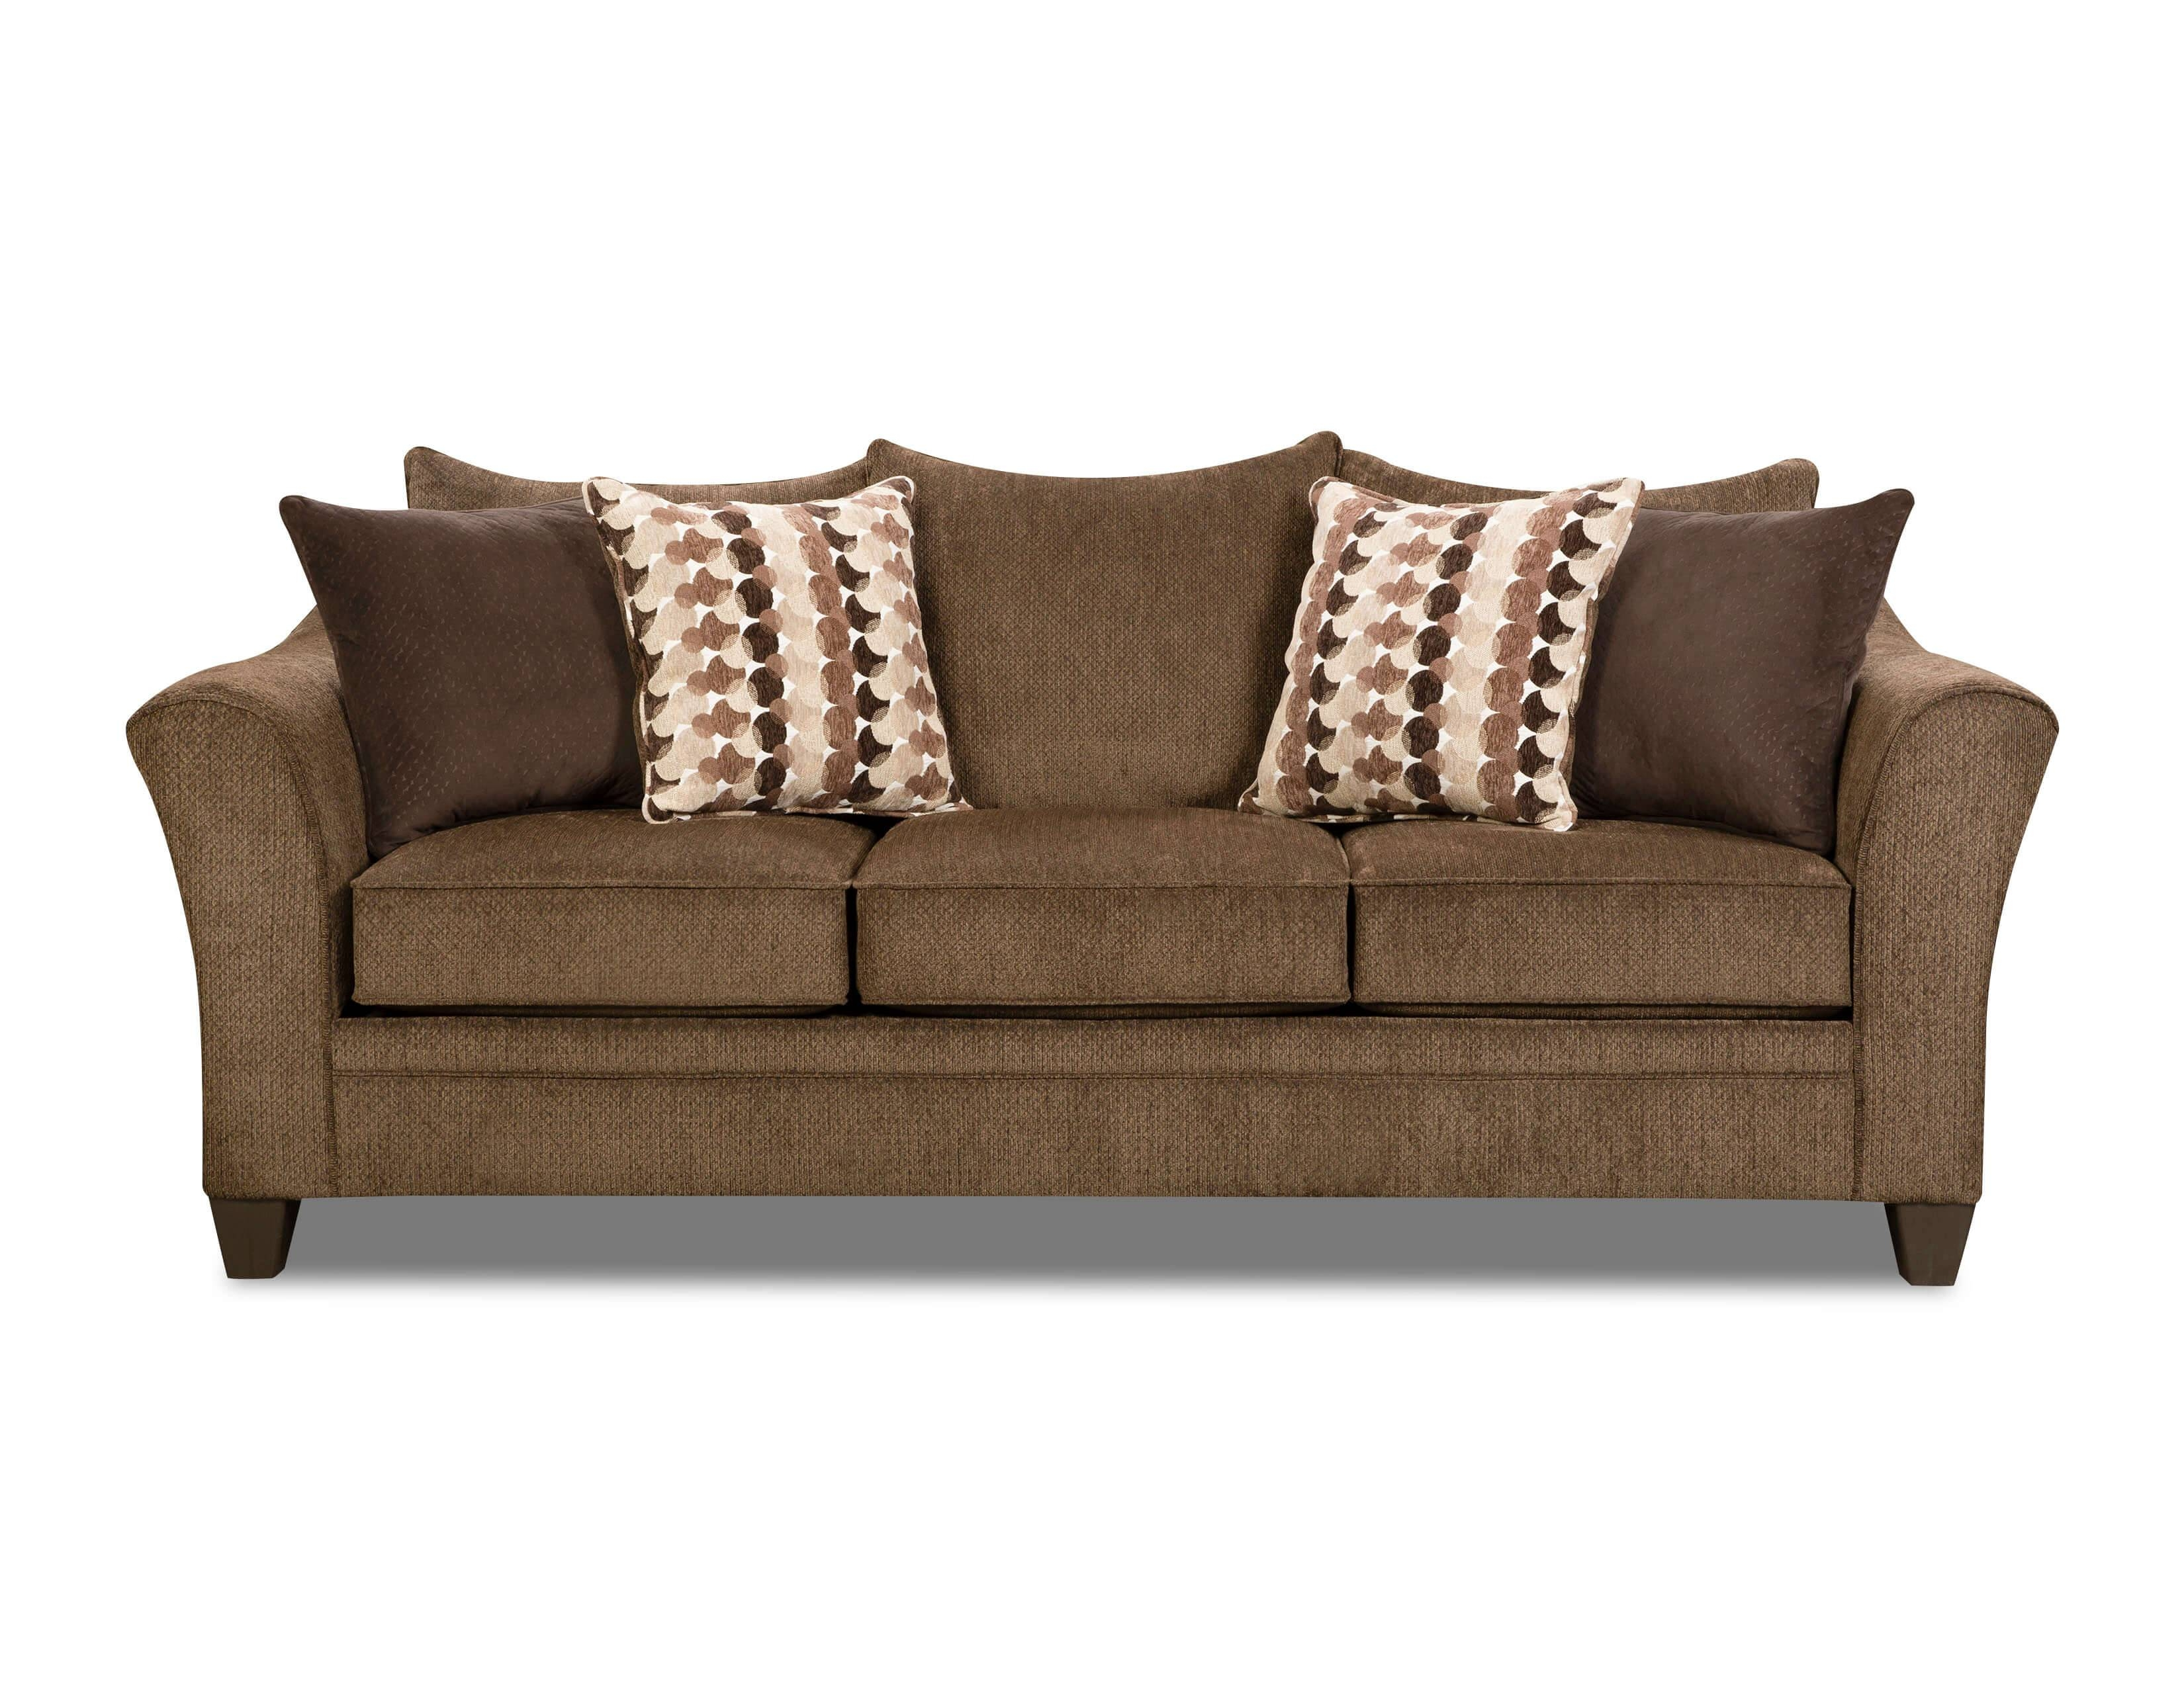 Albany Chestnut Sofa And Loveseatsimmons in Simmons Sectional Sofas (Image 1 of 30)